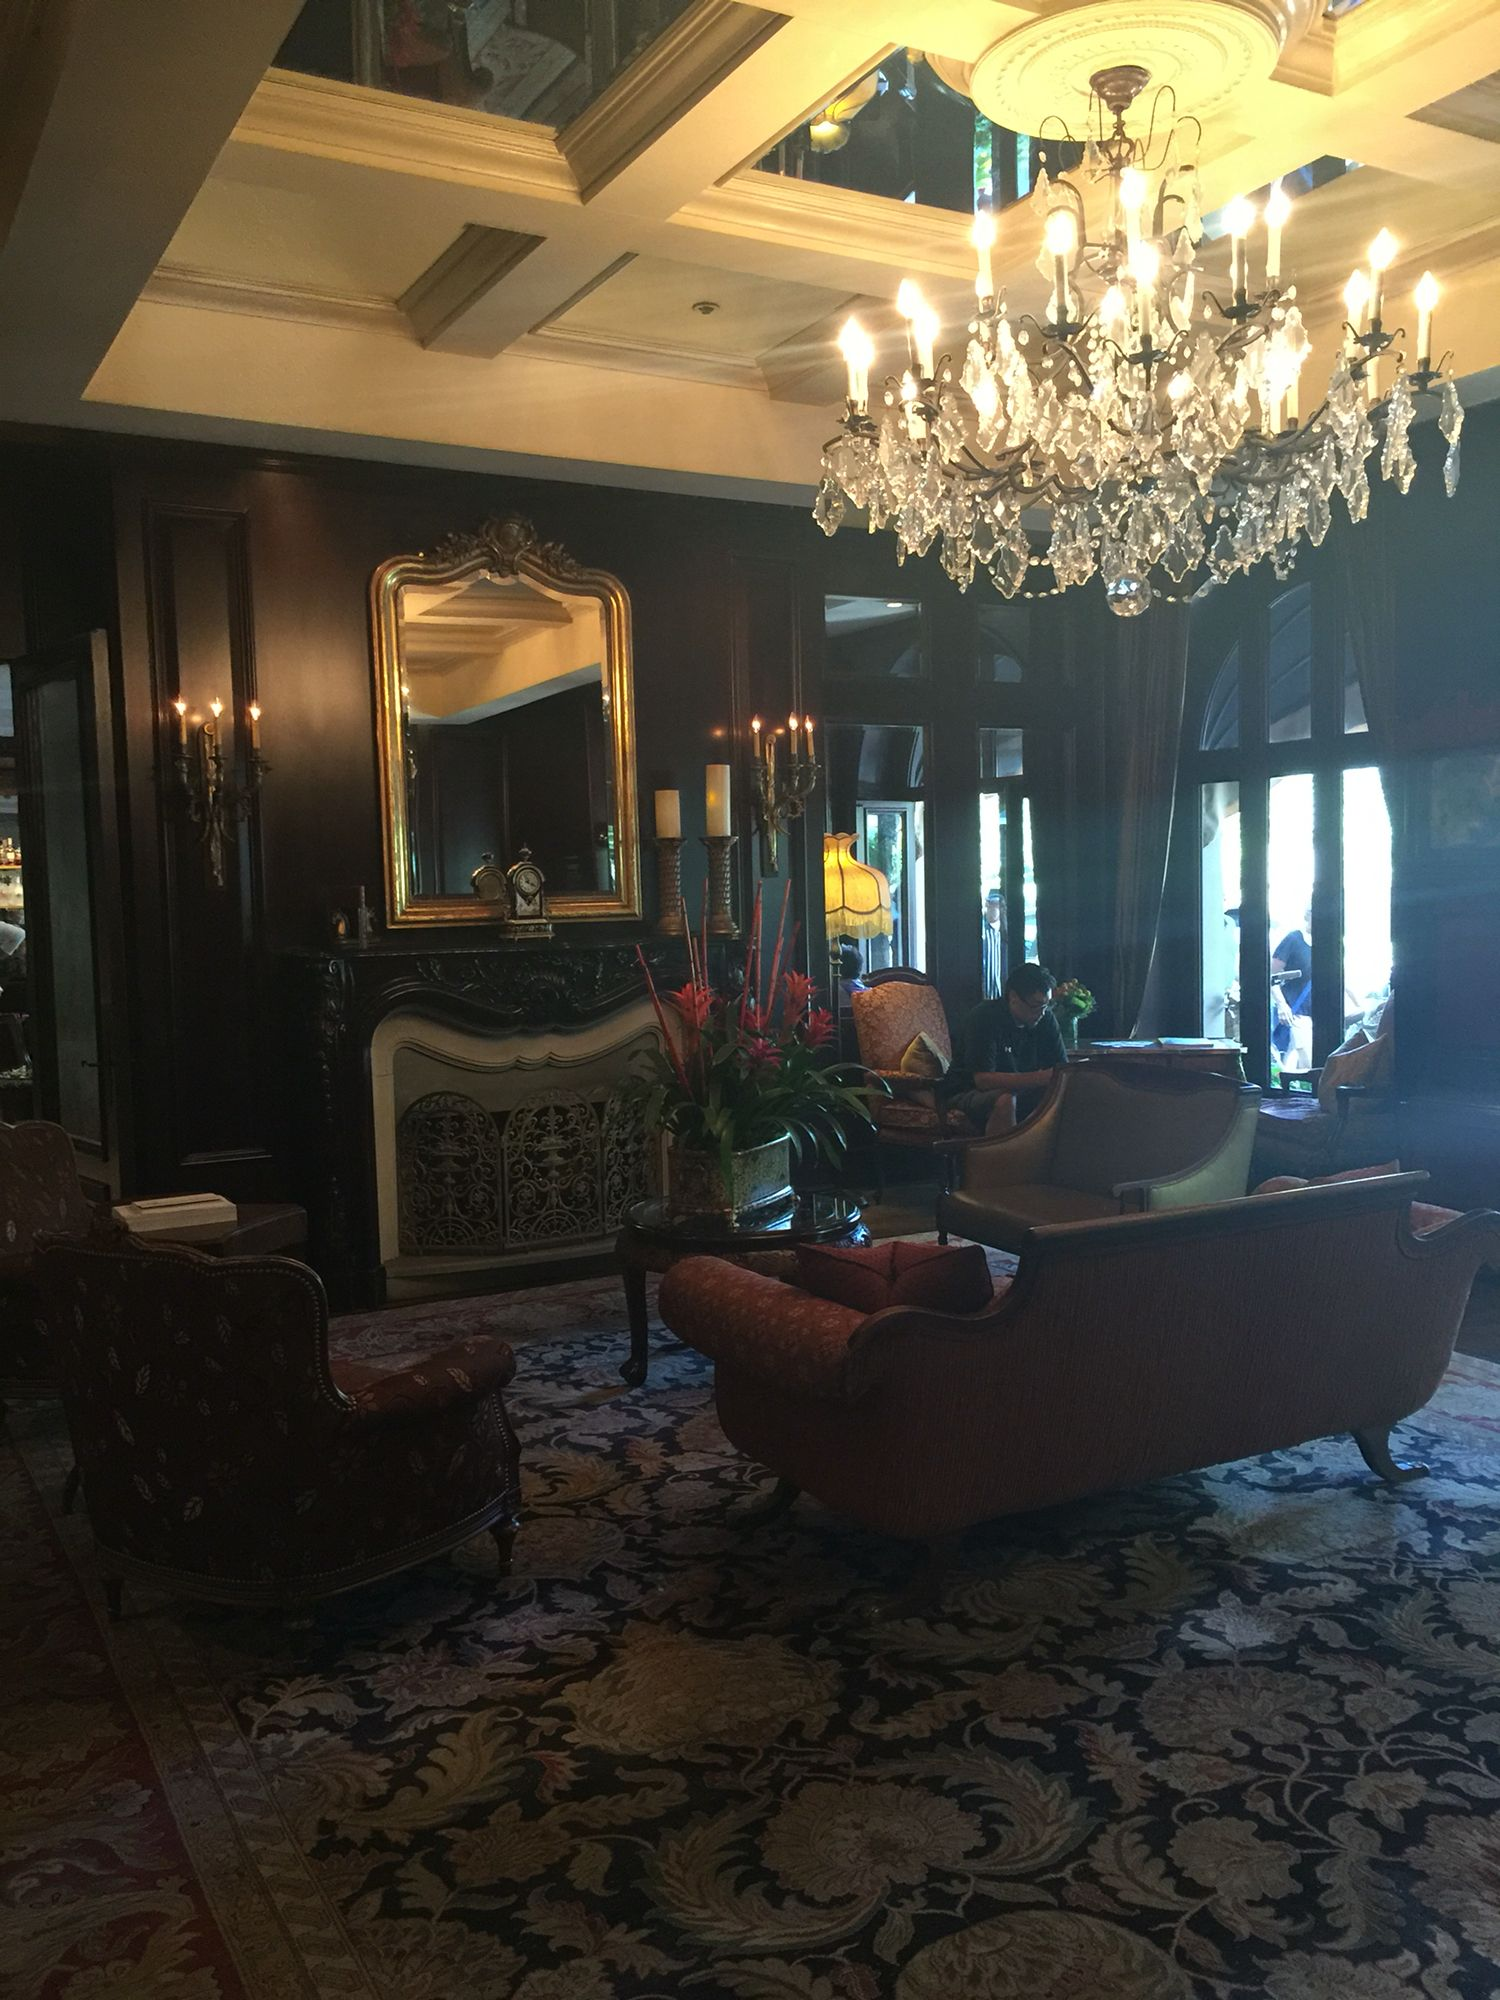 Lobby of Wedgewood Hotel, Vancouver, BC